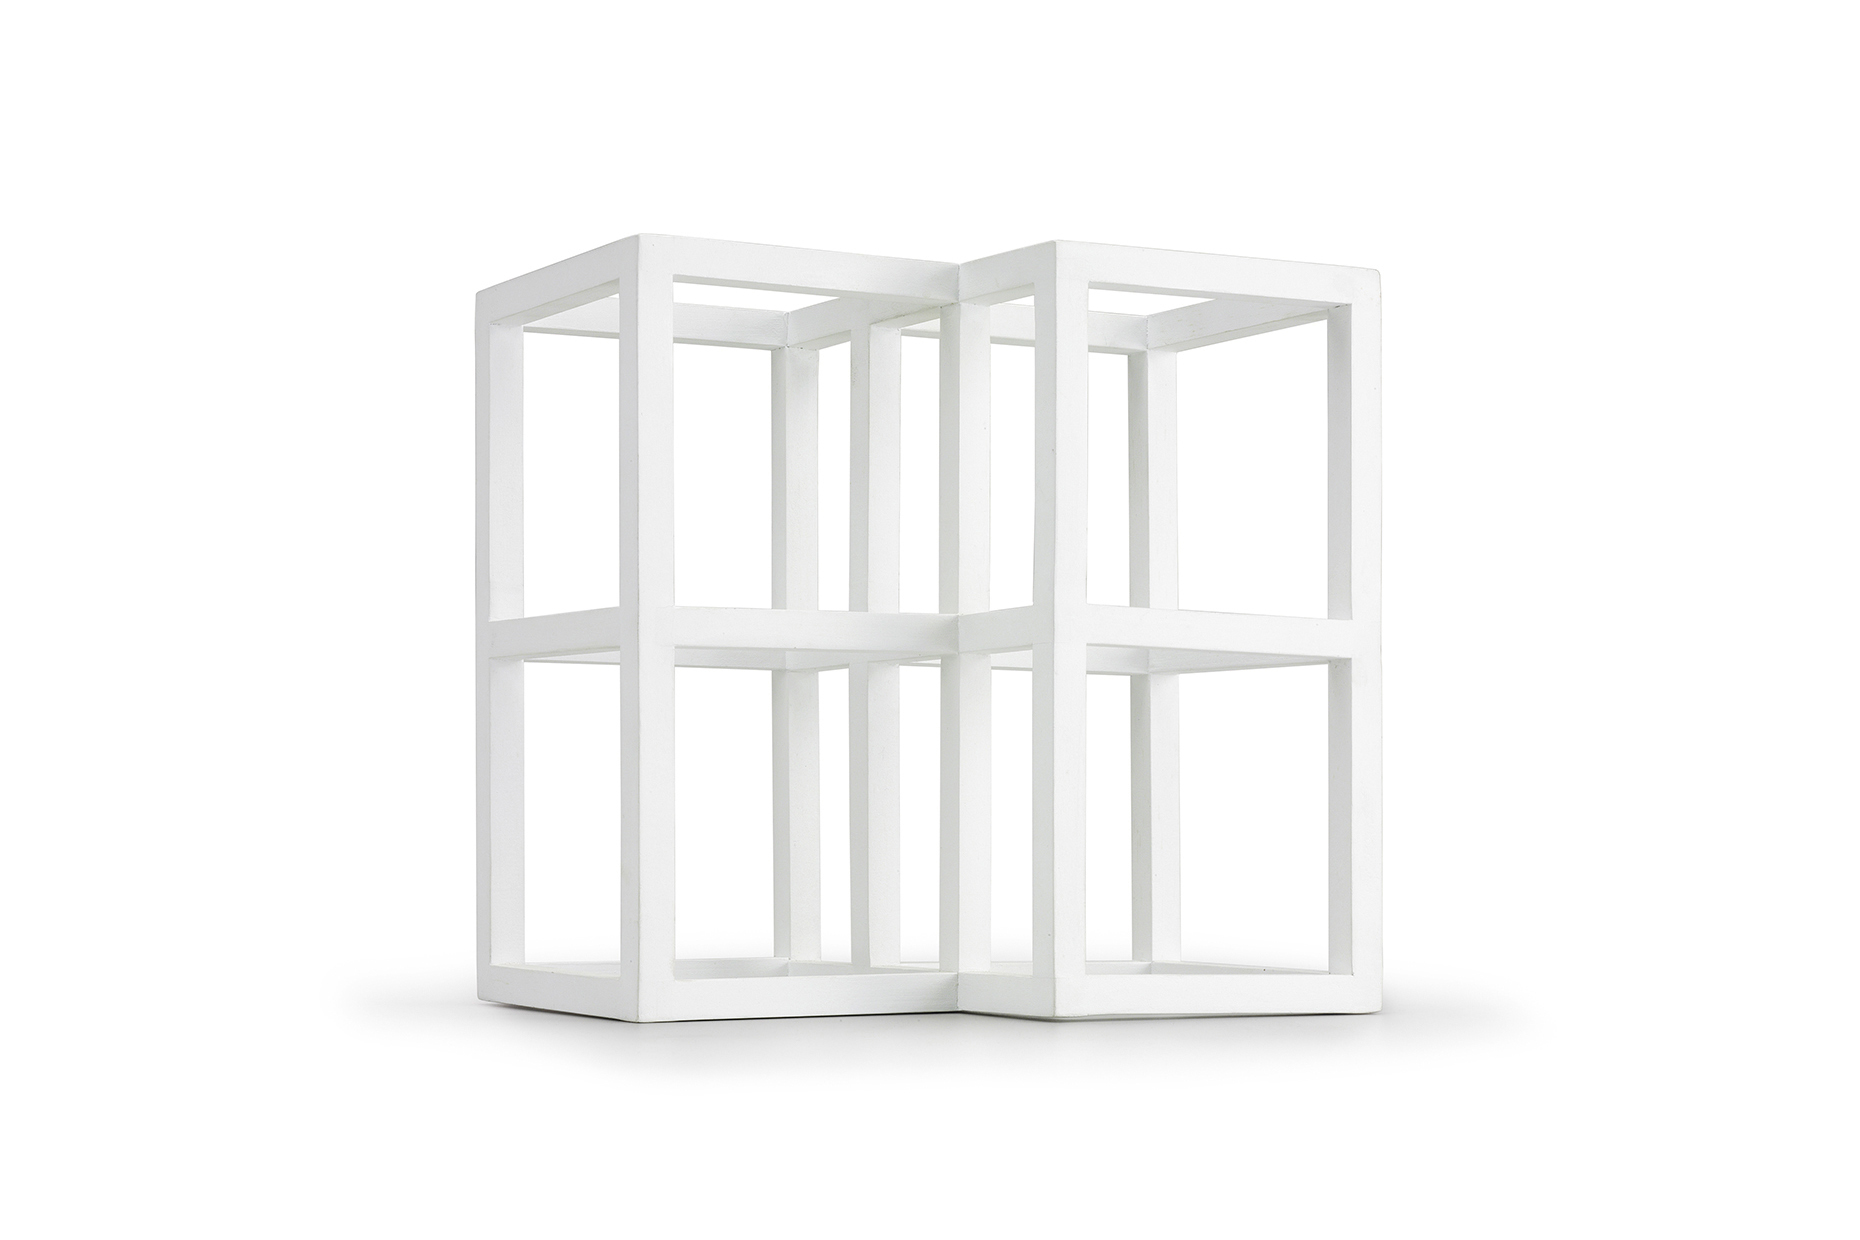 A modern contemporary sculpture of white furniture. Artwork in 3 dimensions with allusions of dimensions